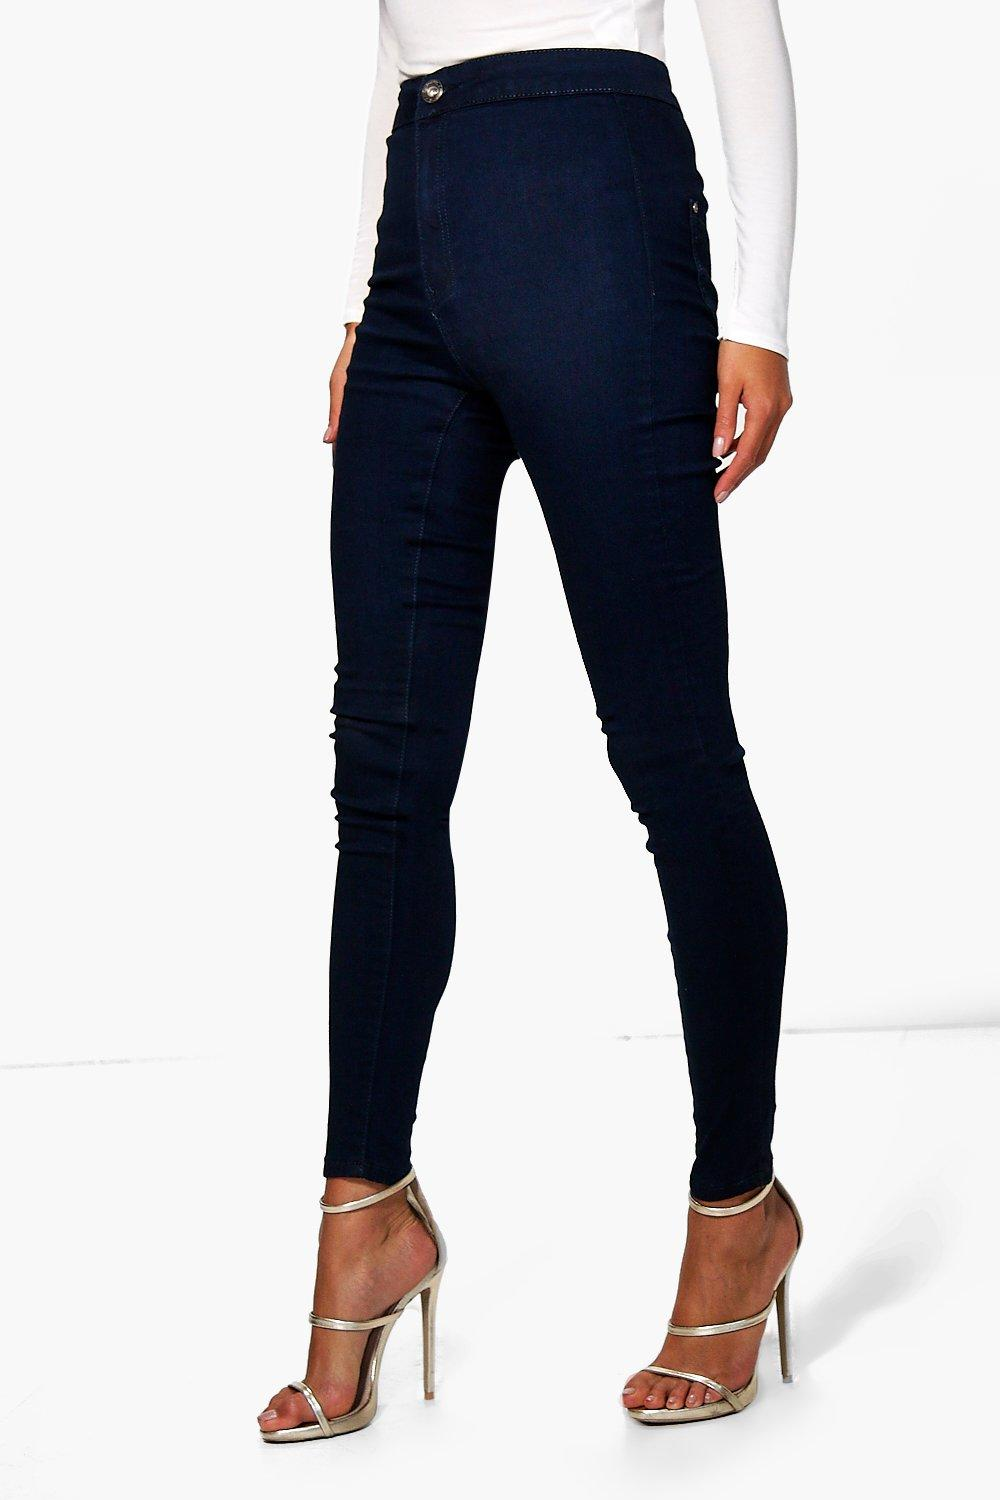 Sally Navy High Rise Tube Jeans